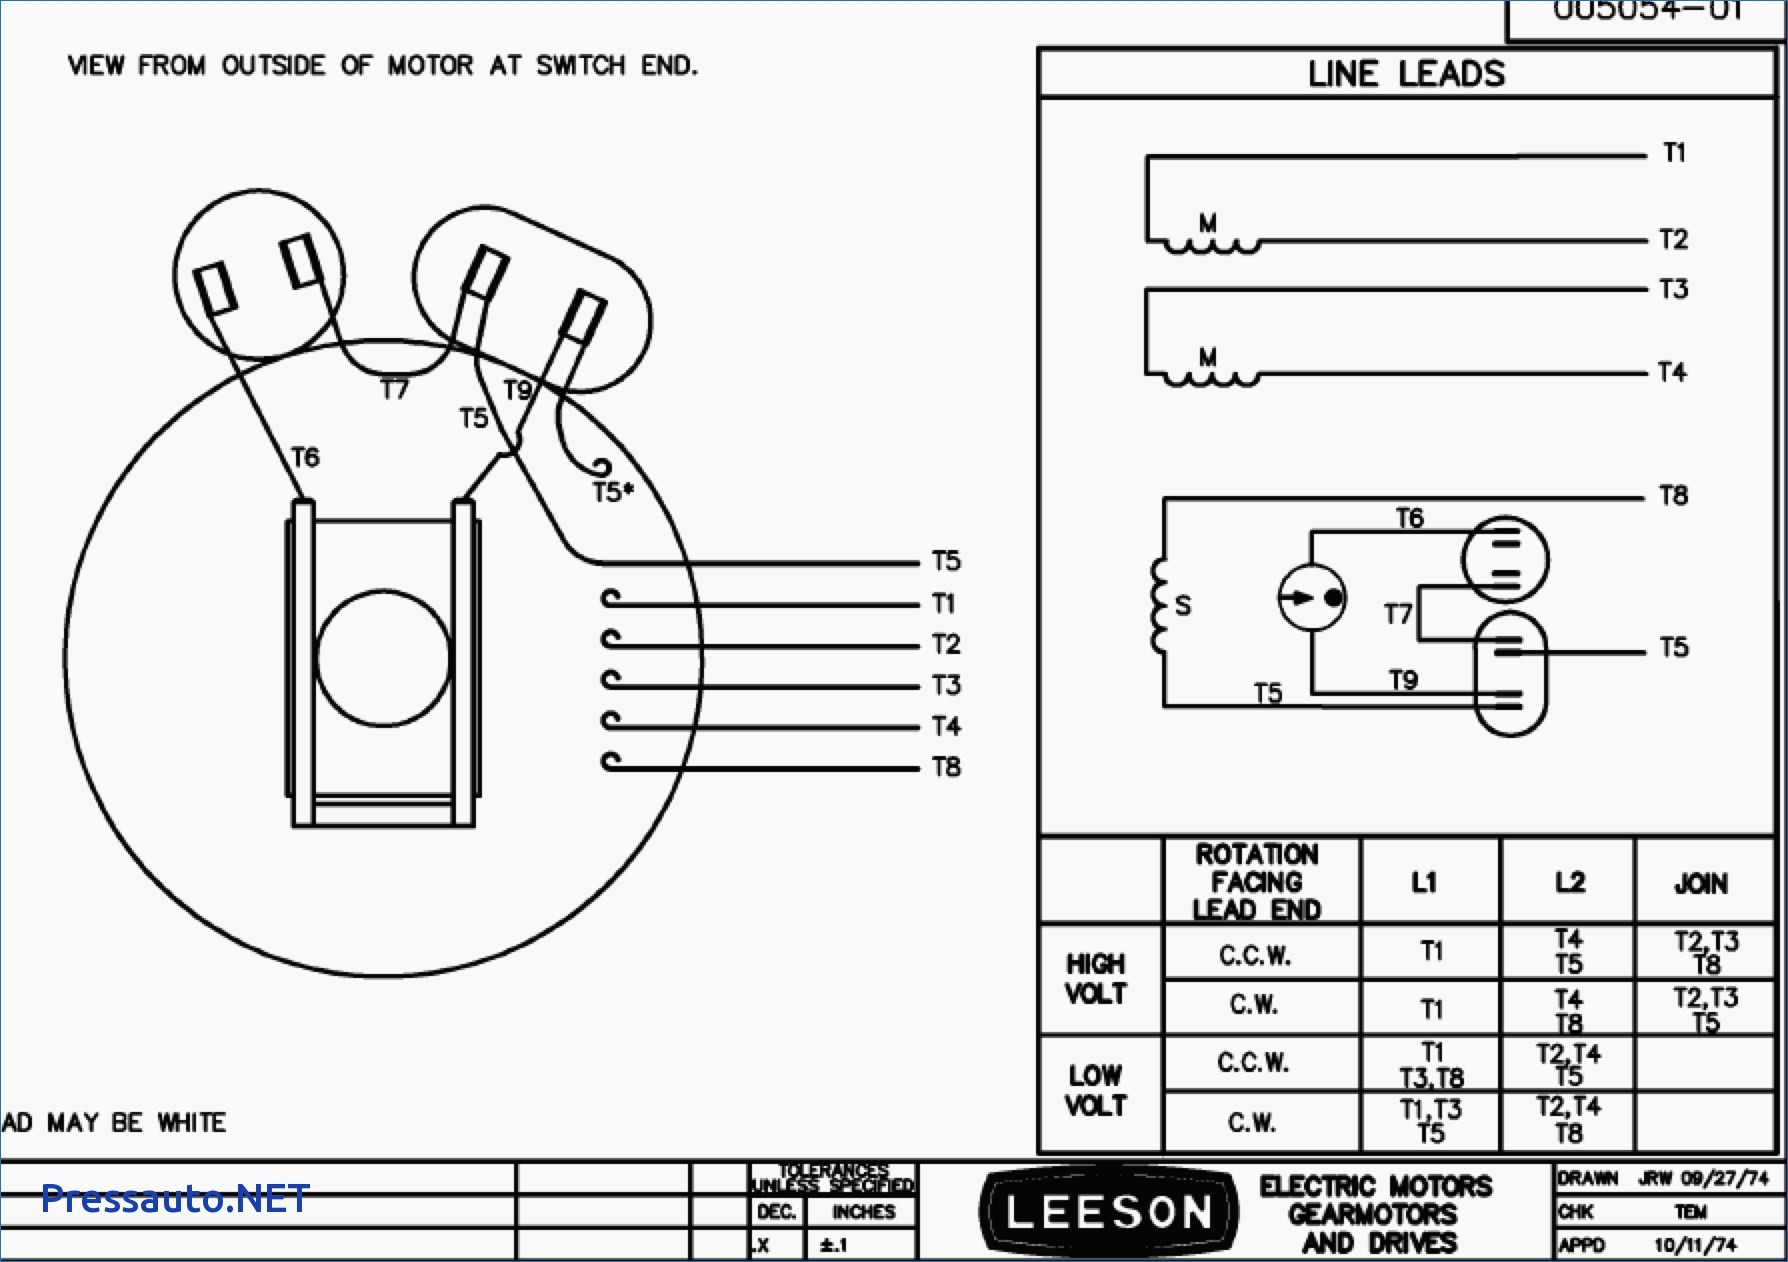 Magnetek Electric Motors Wiring Diagram. century magnetek